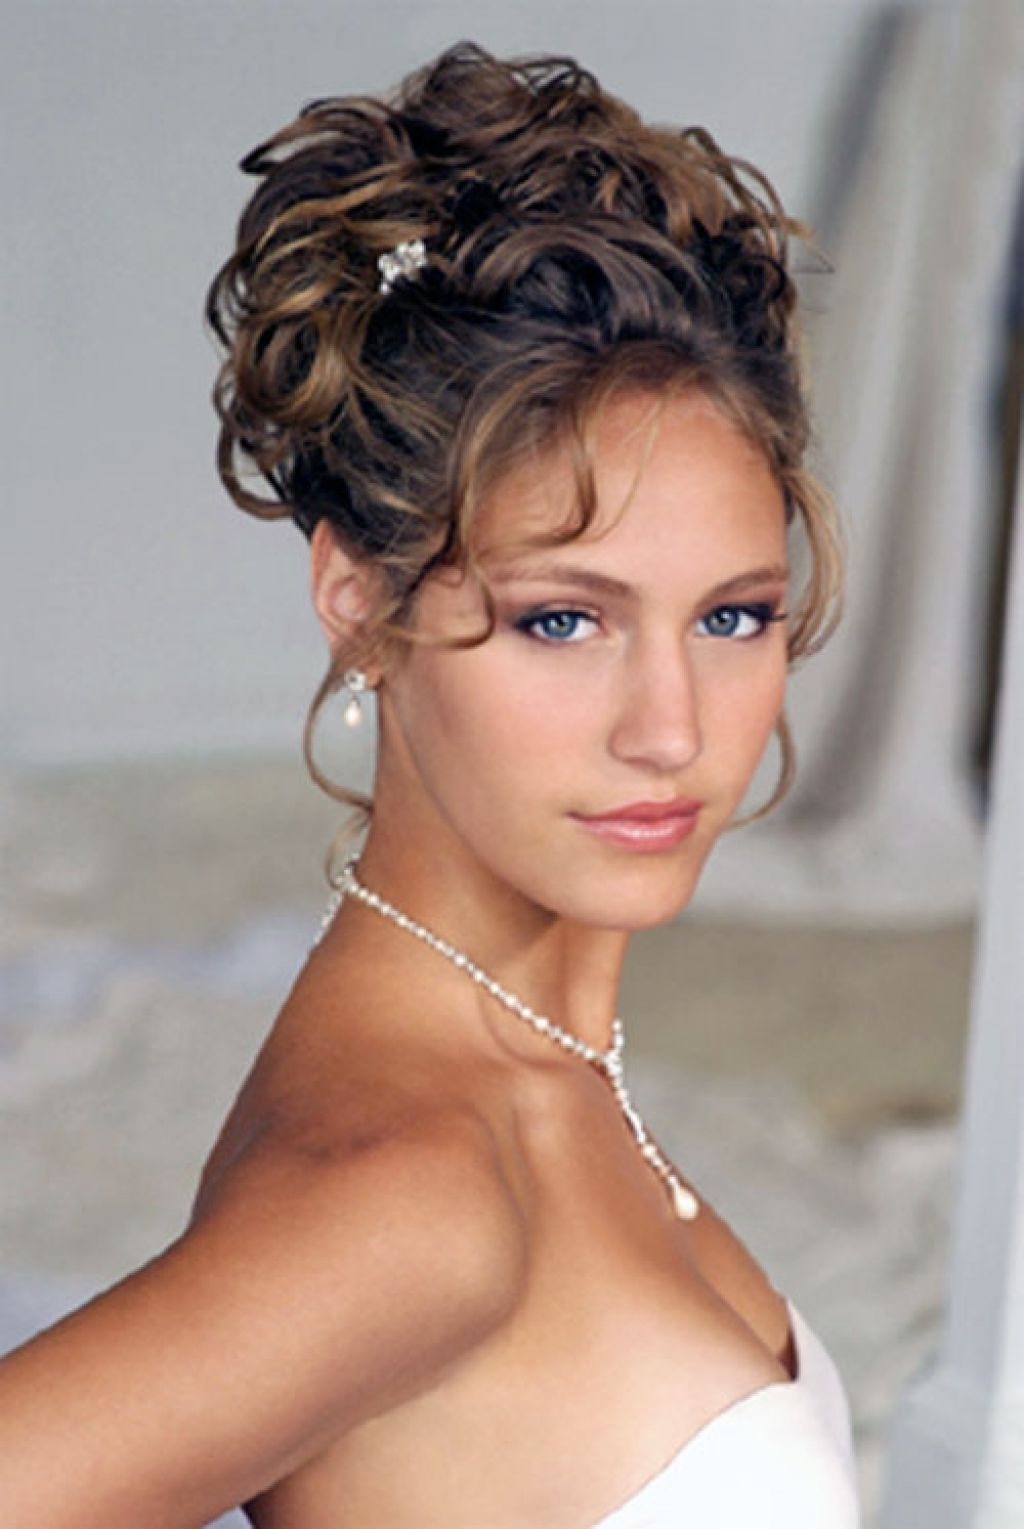 √ 24+ Fresh Hairstyles For Medium Hair Updos: Wedding Updo Within Most Current Bridal Updo Hairstyles For Medium Length Hair (View 1 of 15)